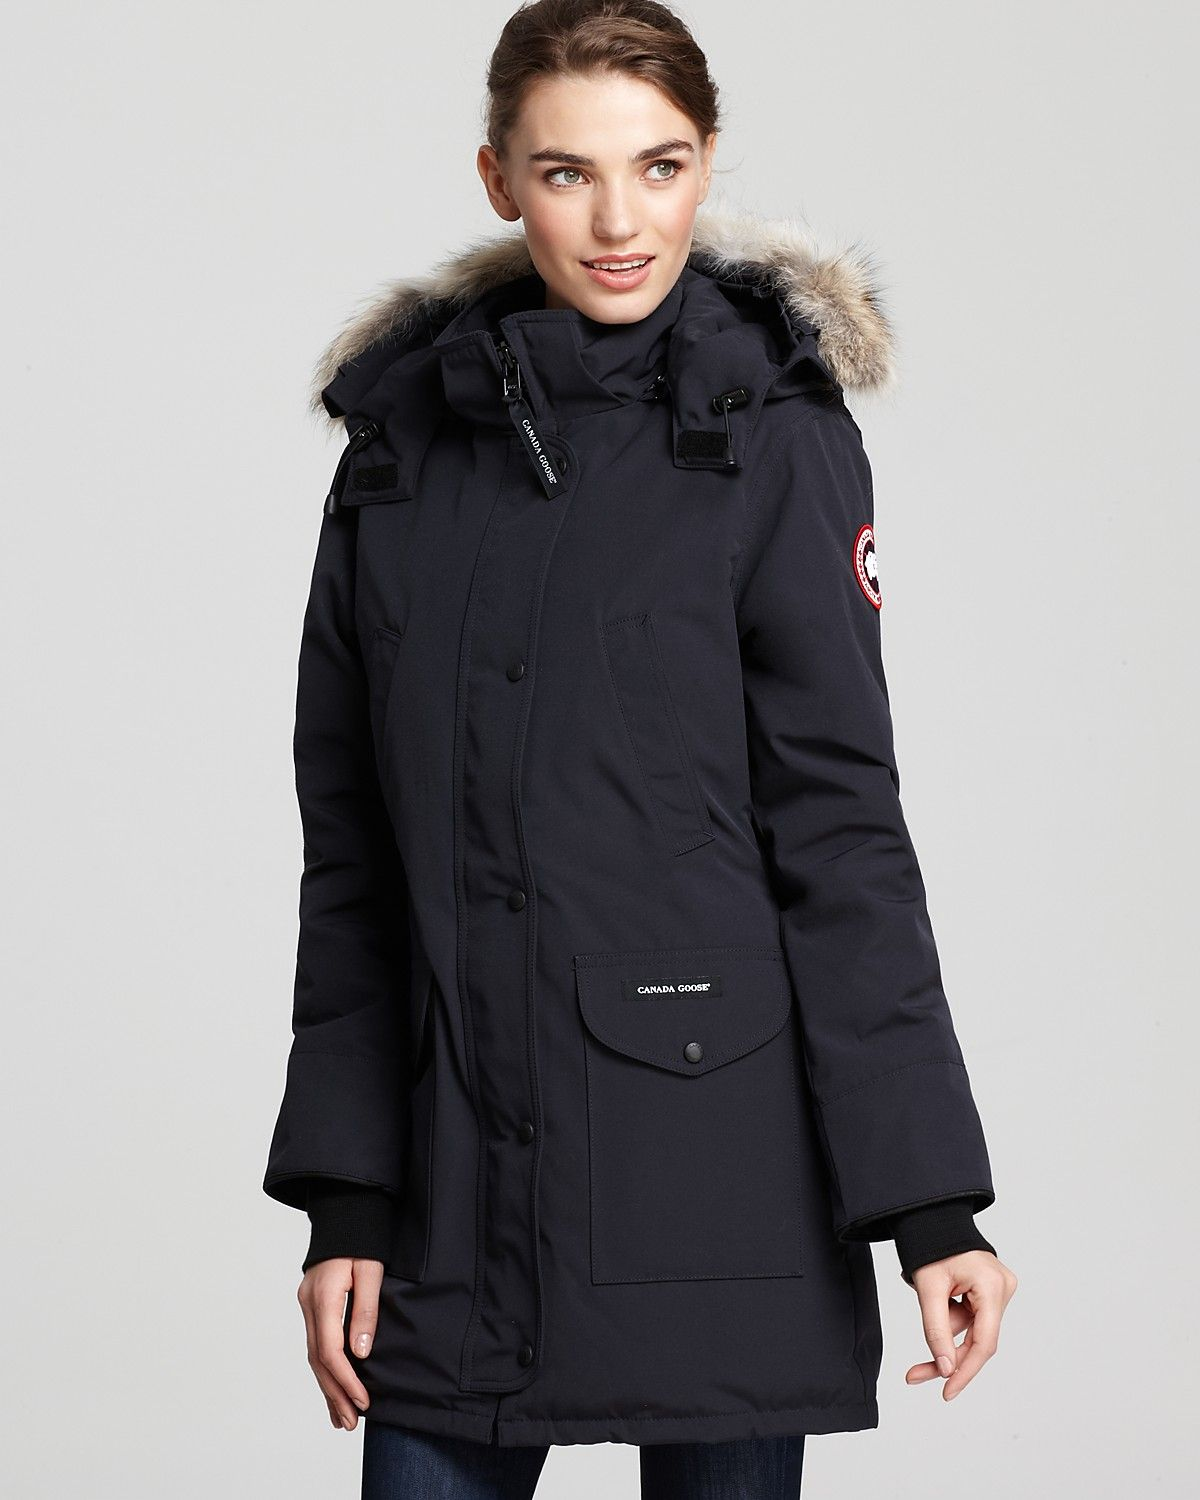 canada goose jacket womens long